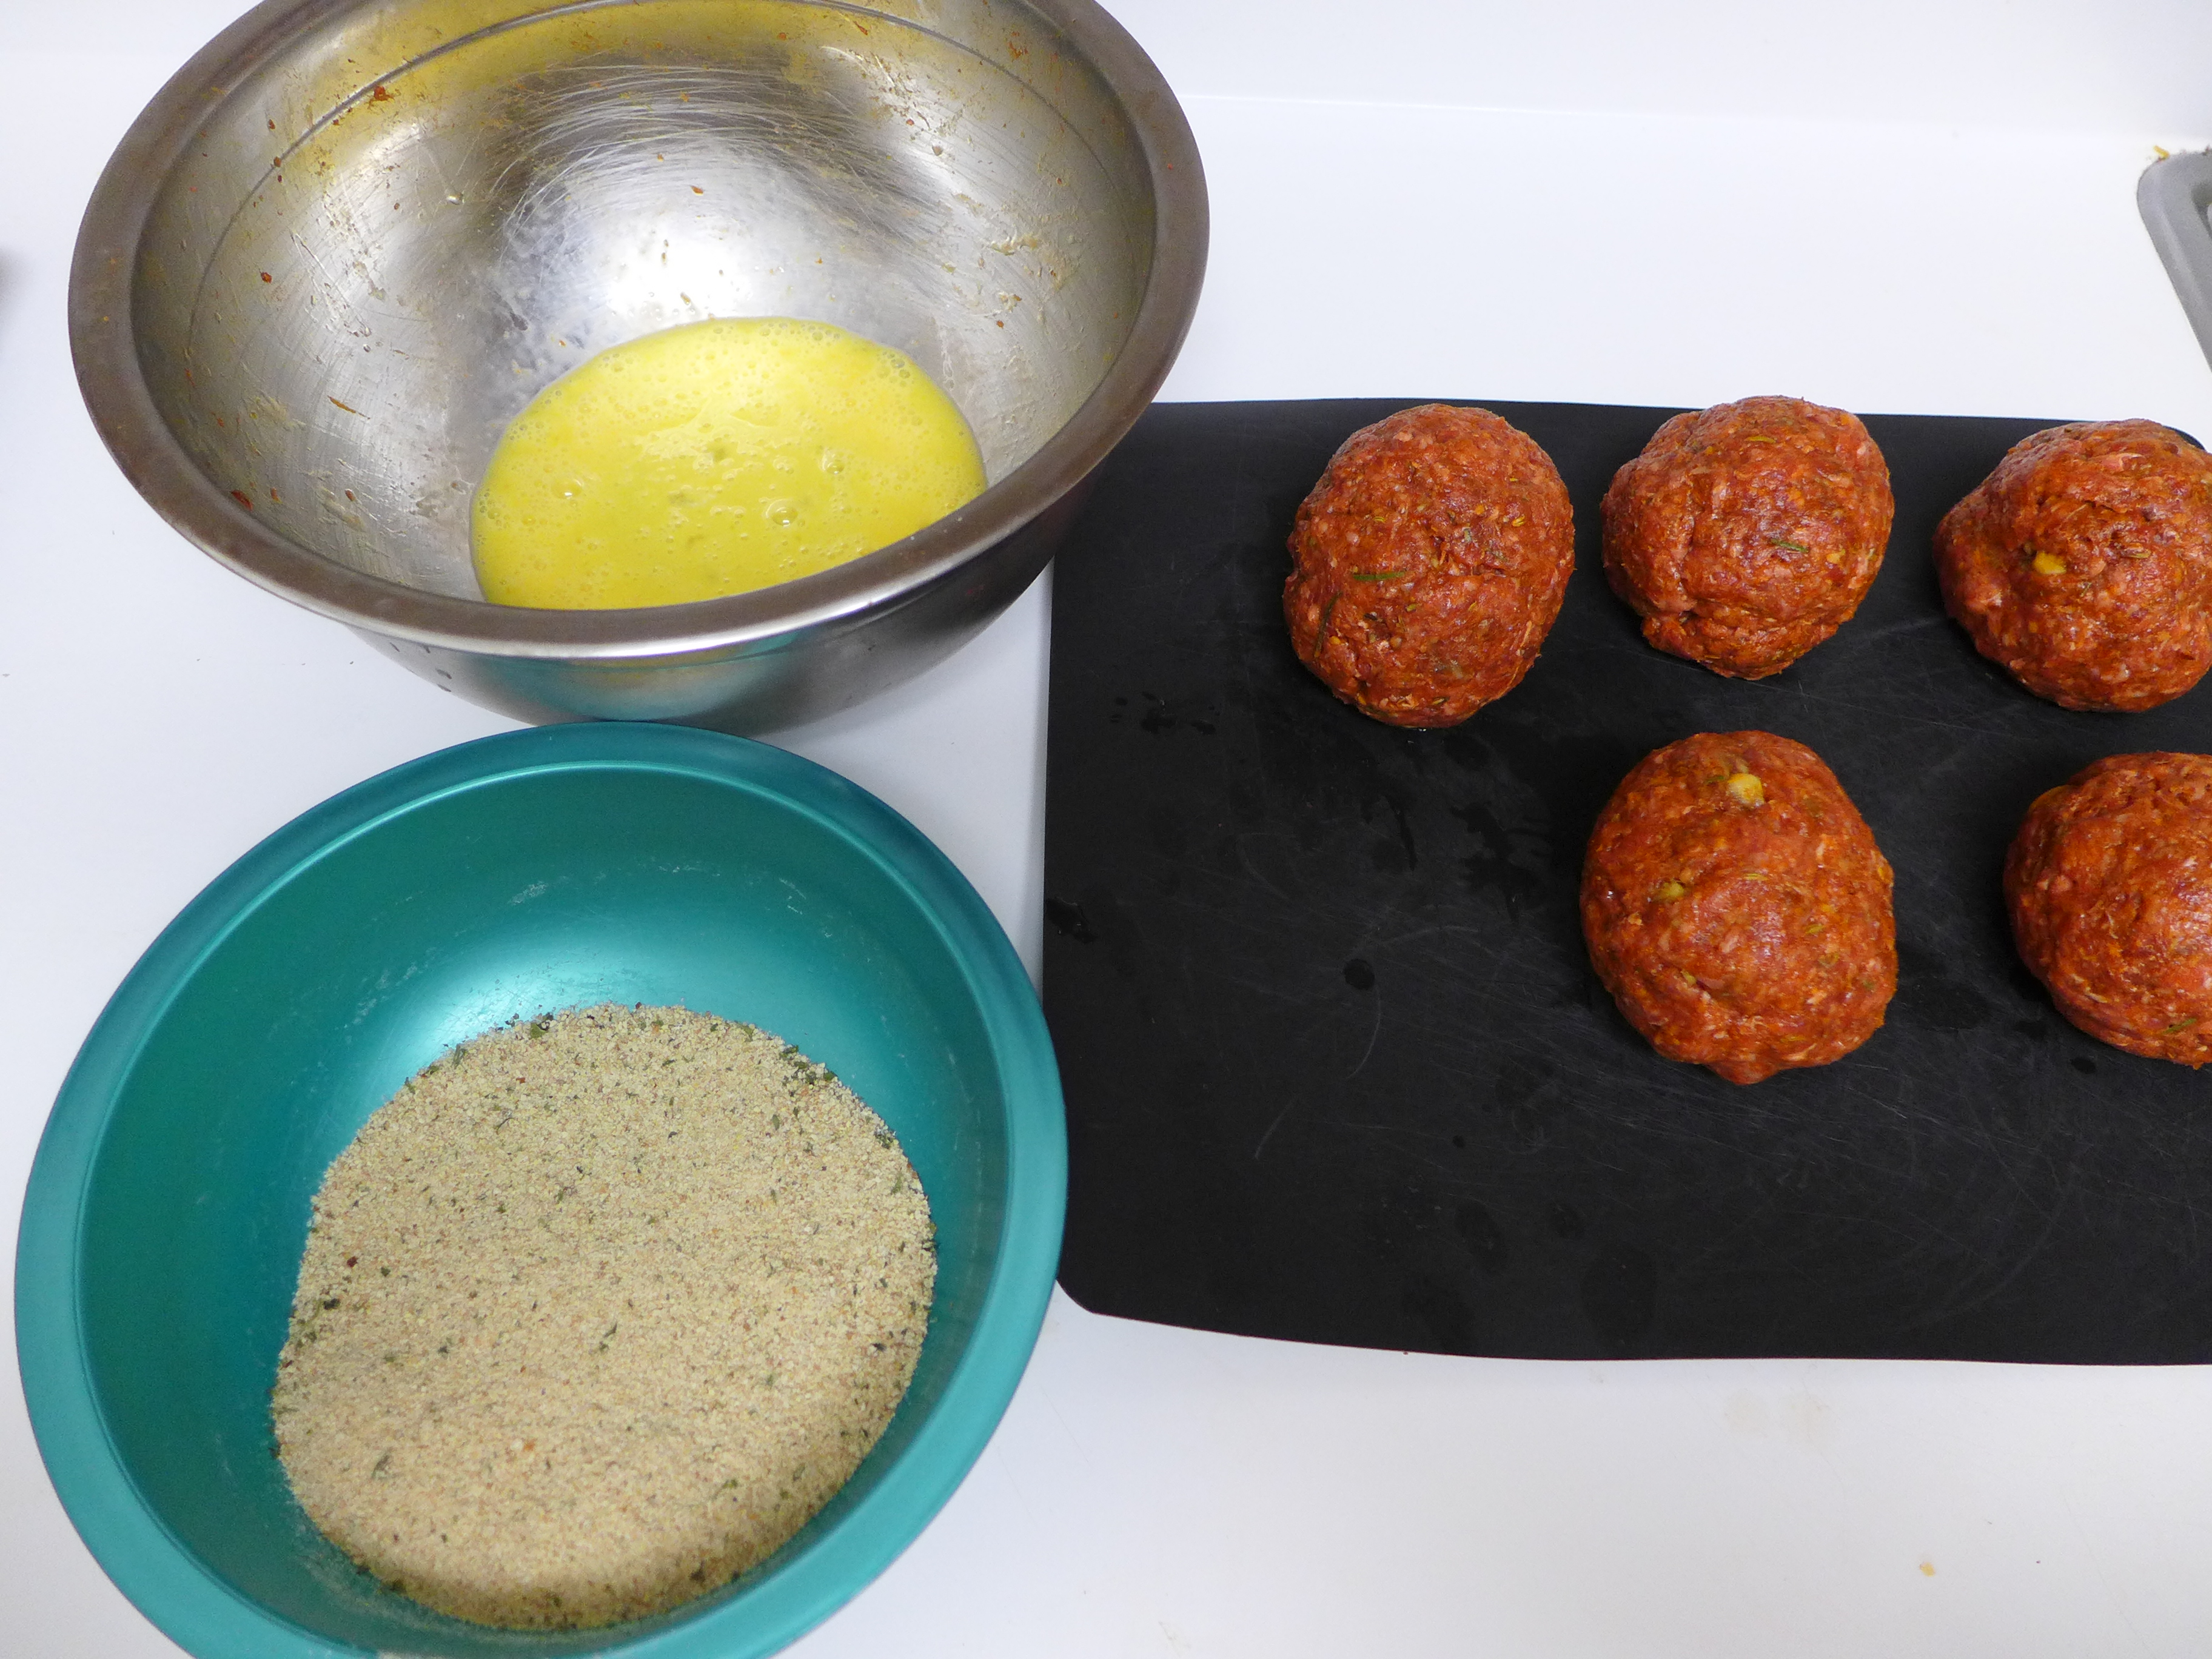 Kitchen Overlord Hobbit Week - Shire Baked Scotch Eggs Instructions